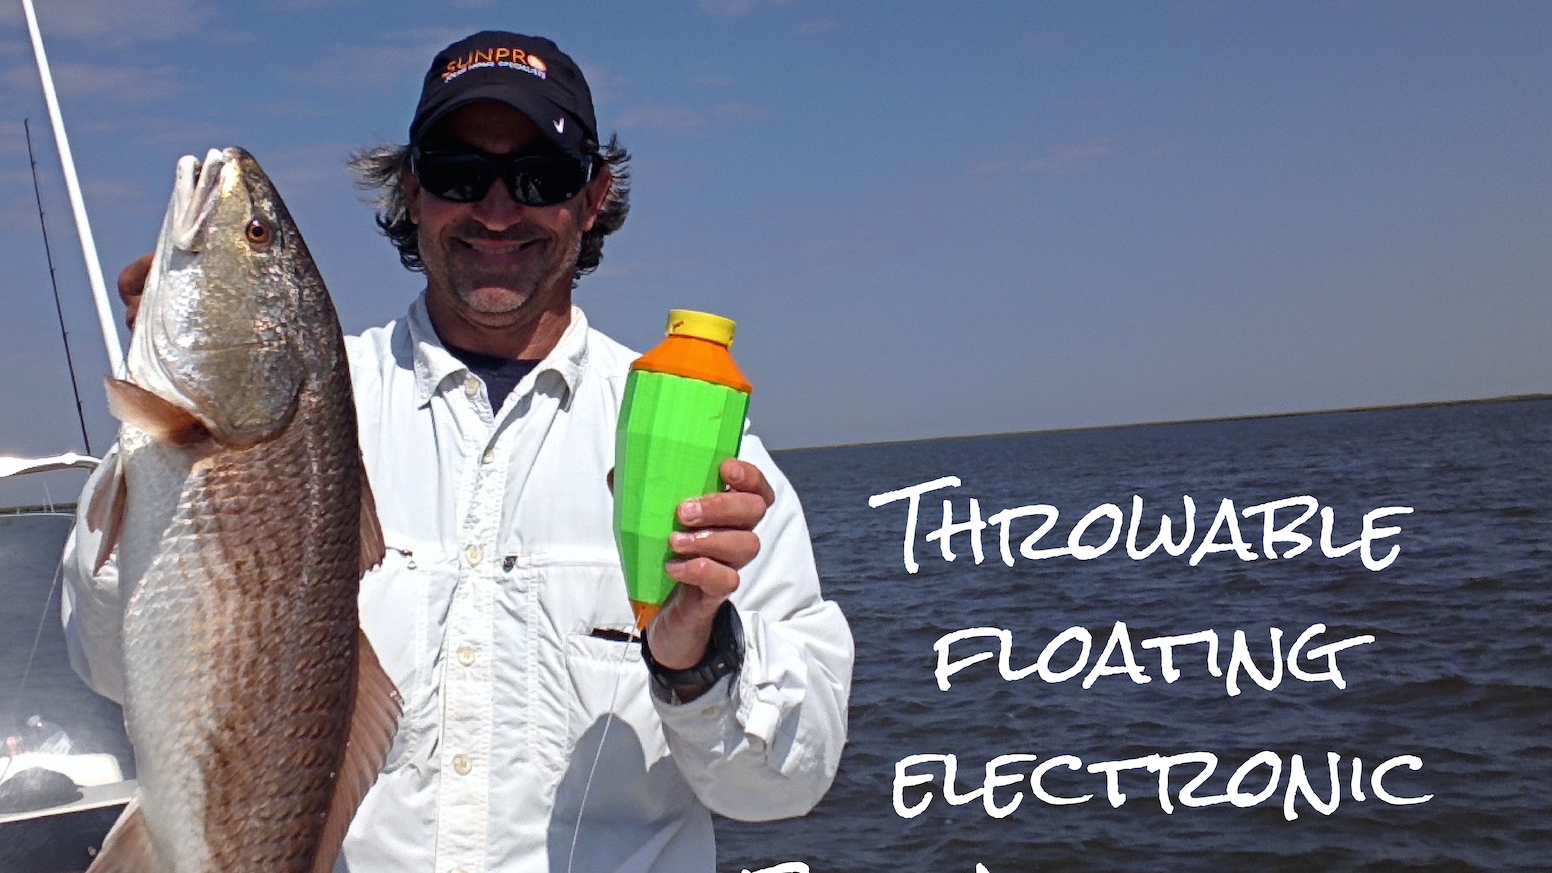 The world's first throwable, floating, electronic fish attractor - it helps you catch more fish! Order yours on our website TheFishCall.com!